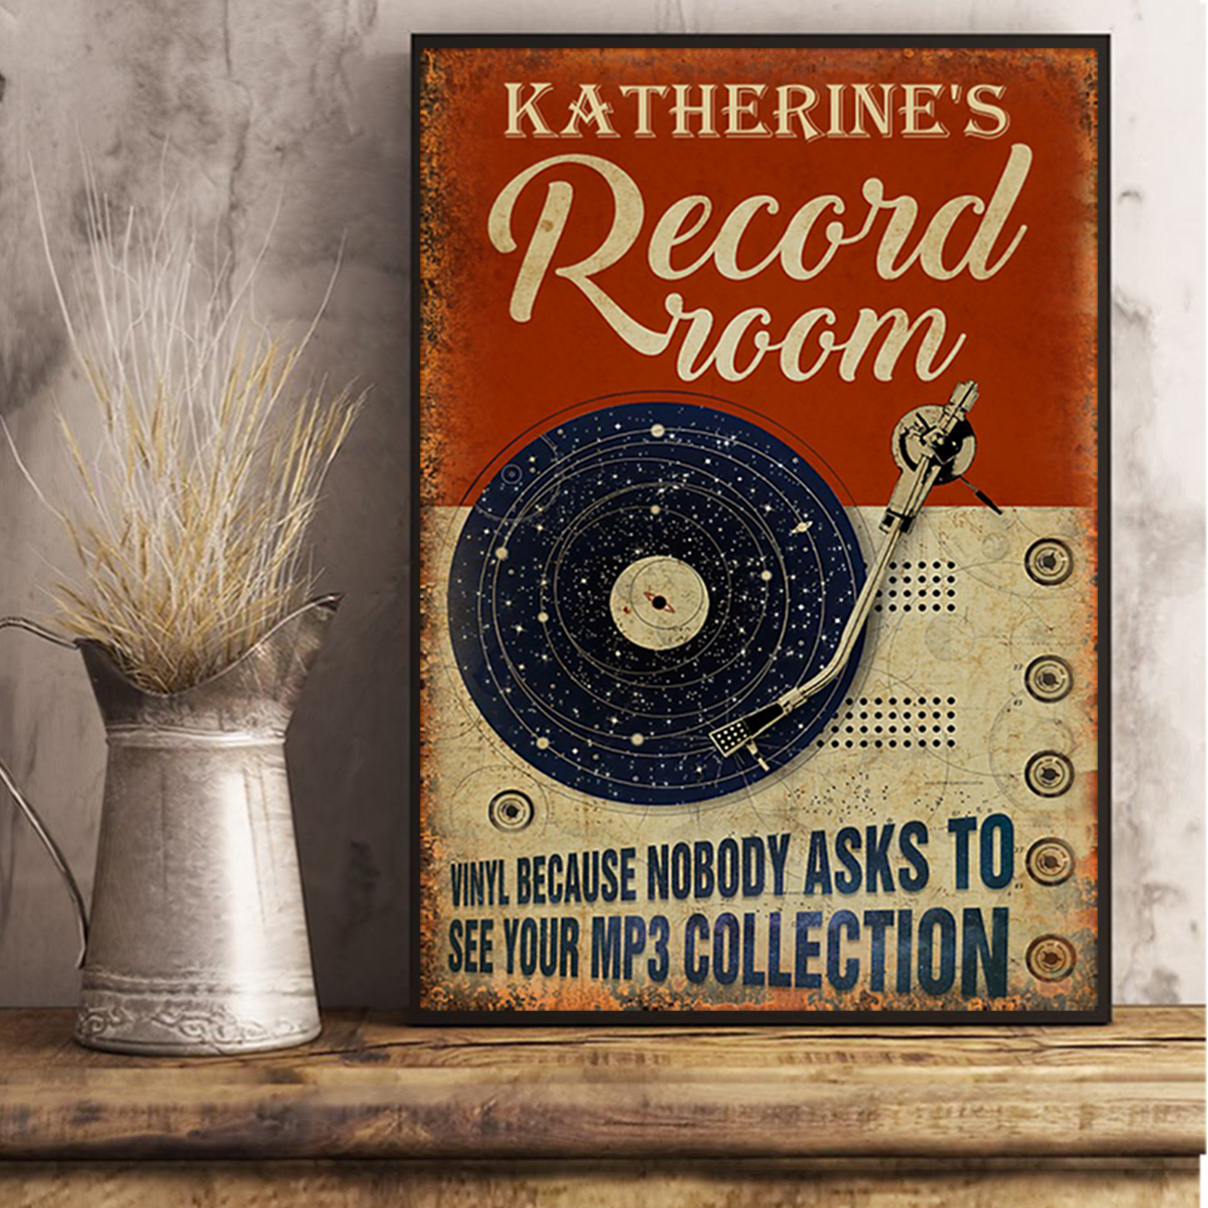 Katherine's record room vinyl because nobody ask to see your mp3 collection poster A1